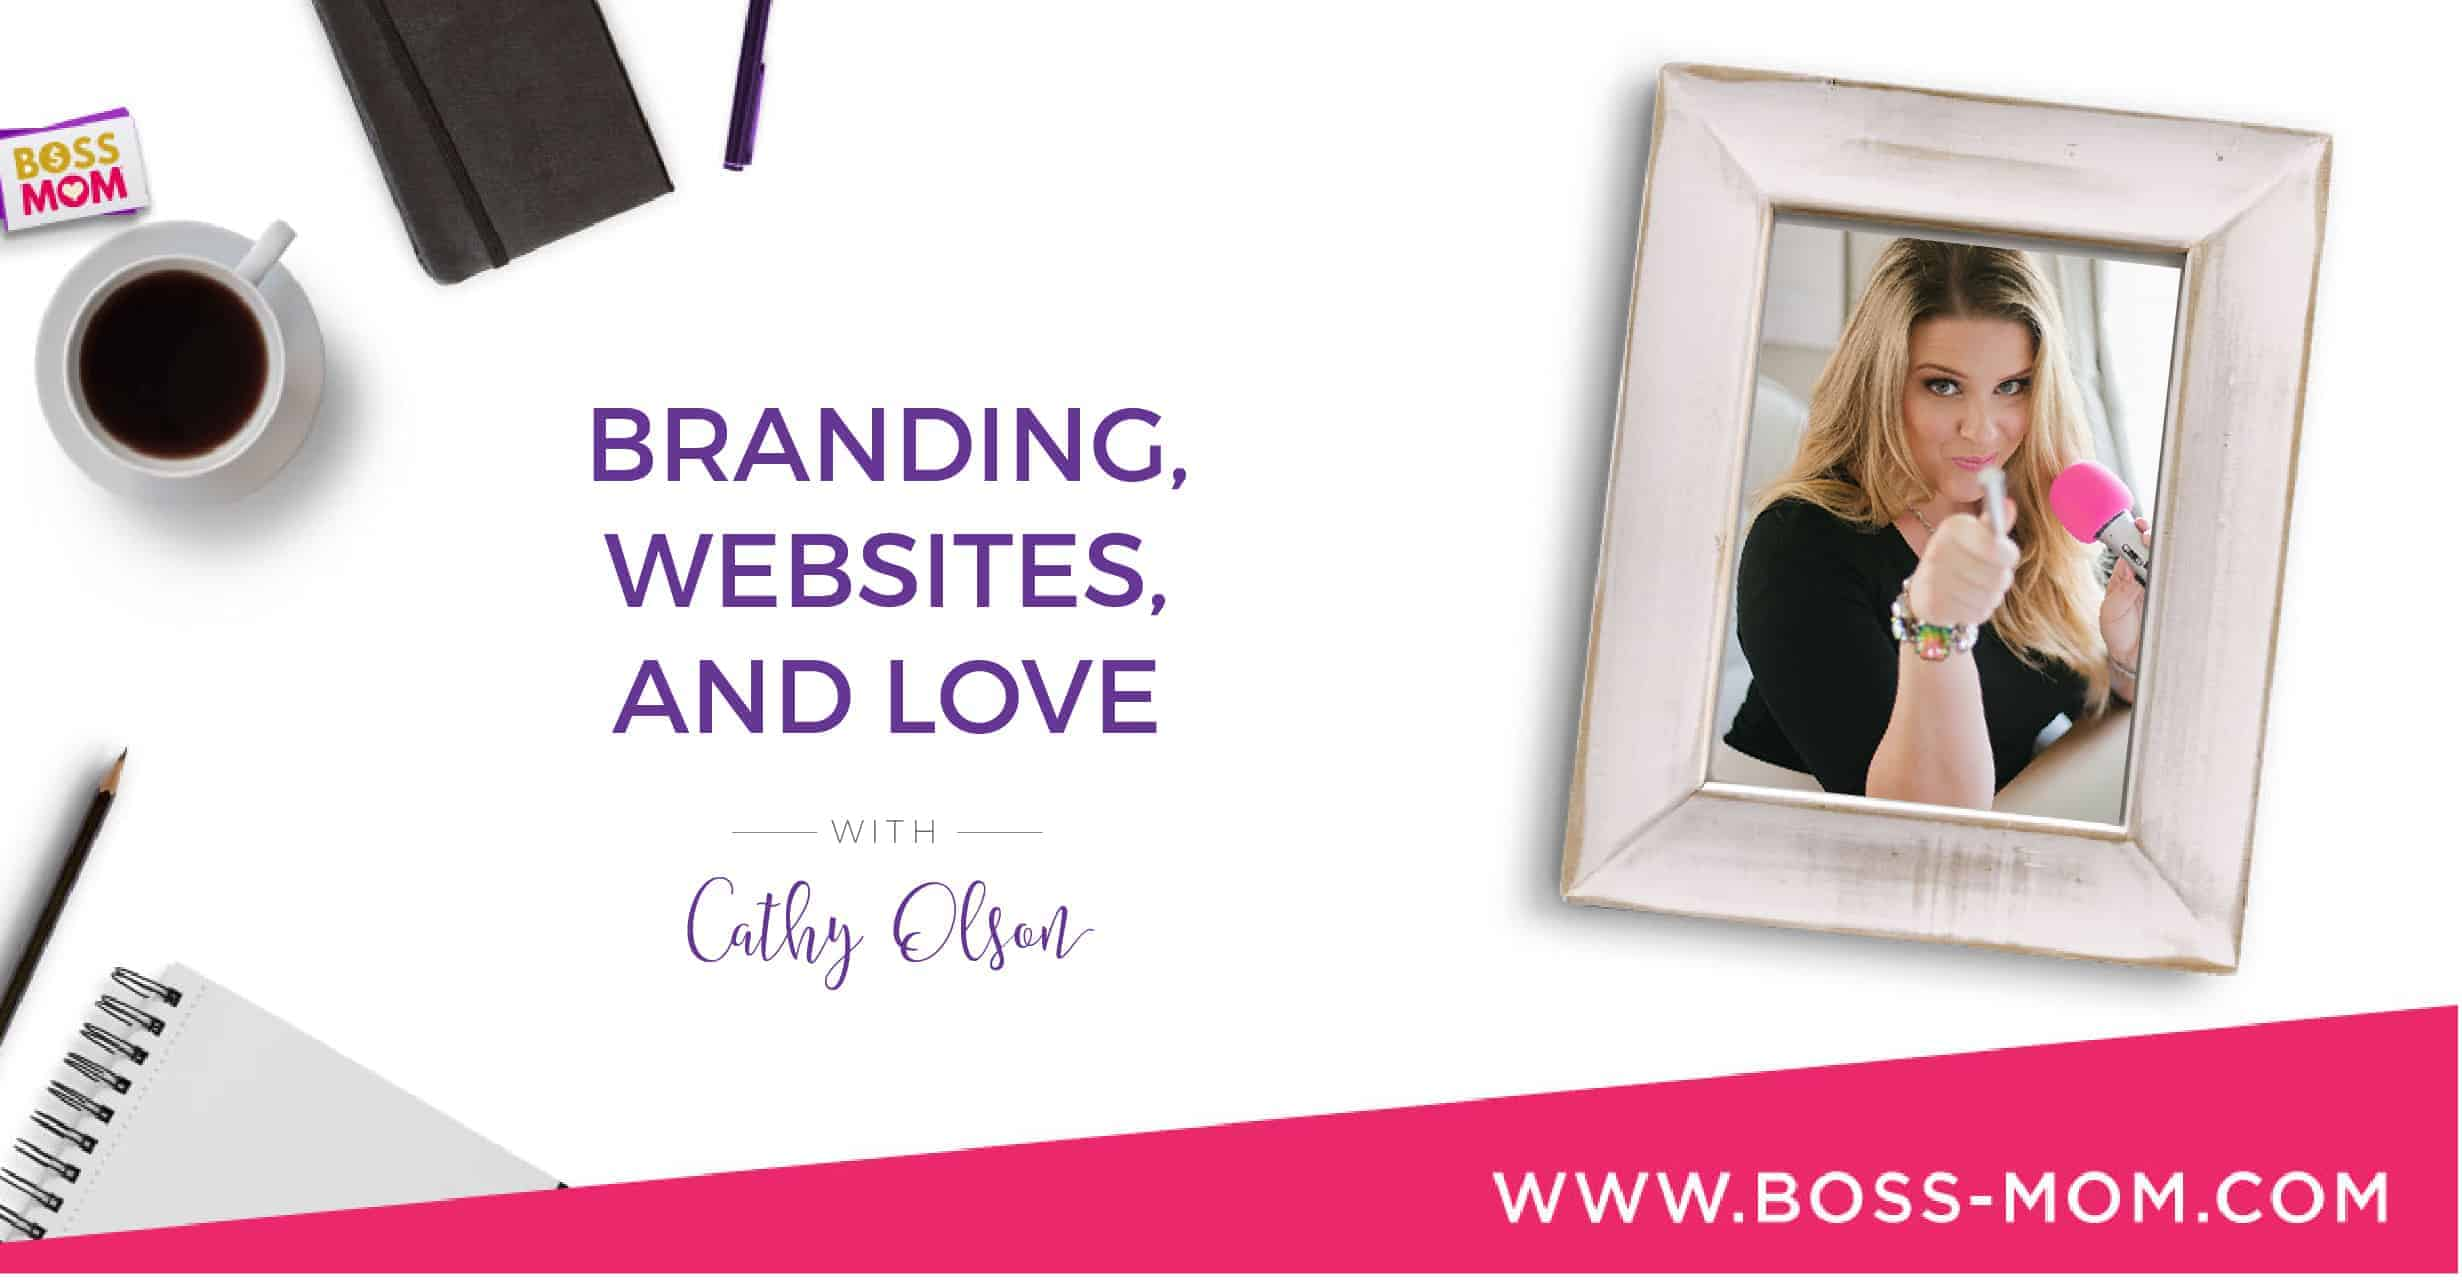 Episode 204: Branding, Websites, and Love with Cathy Olson